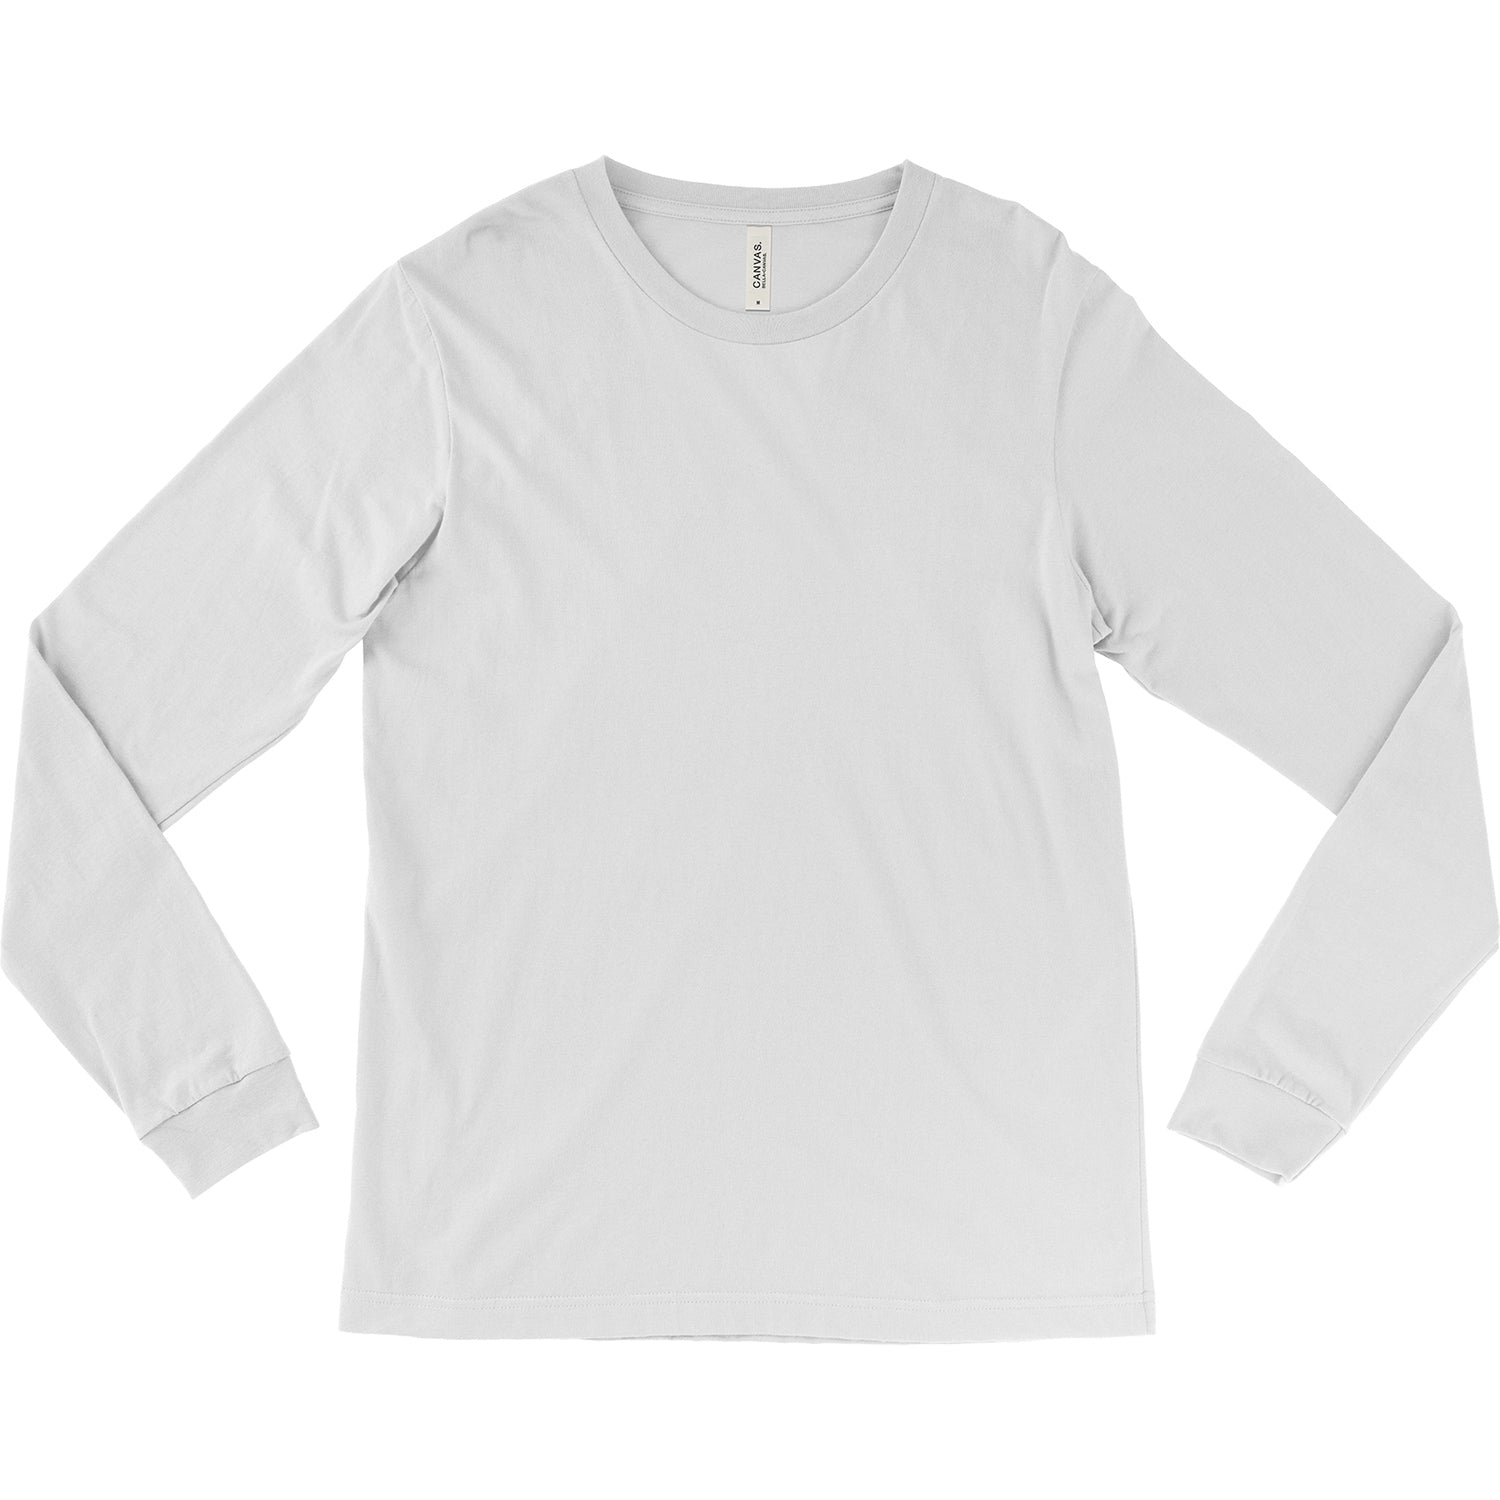 Unisex Jersey Long Sleeve Tee - White